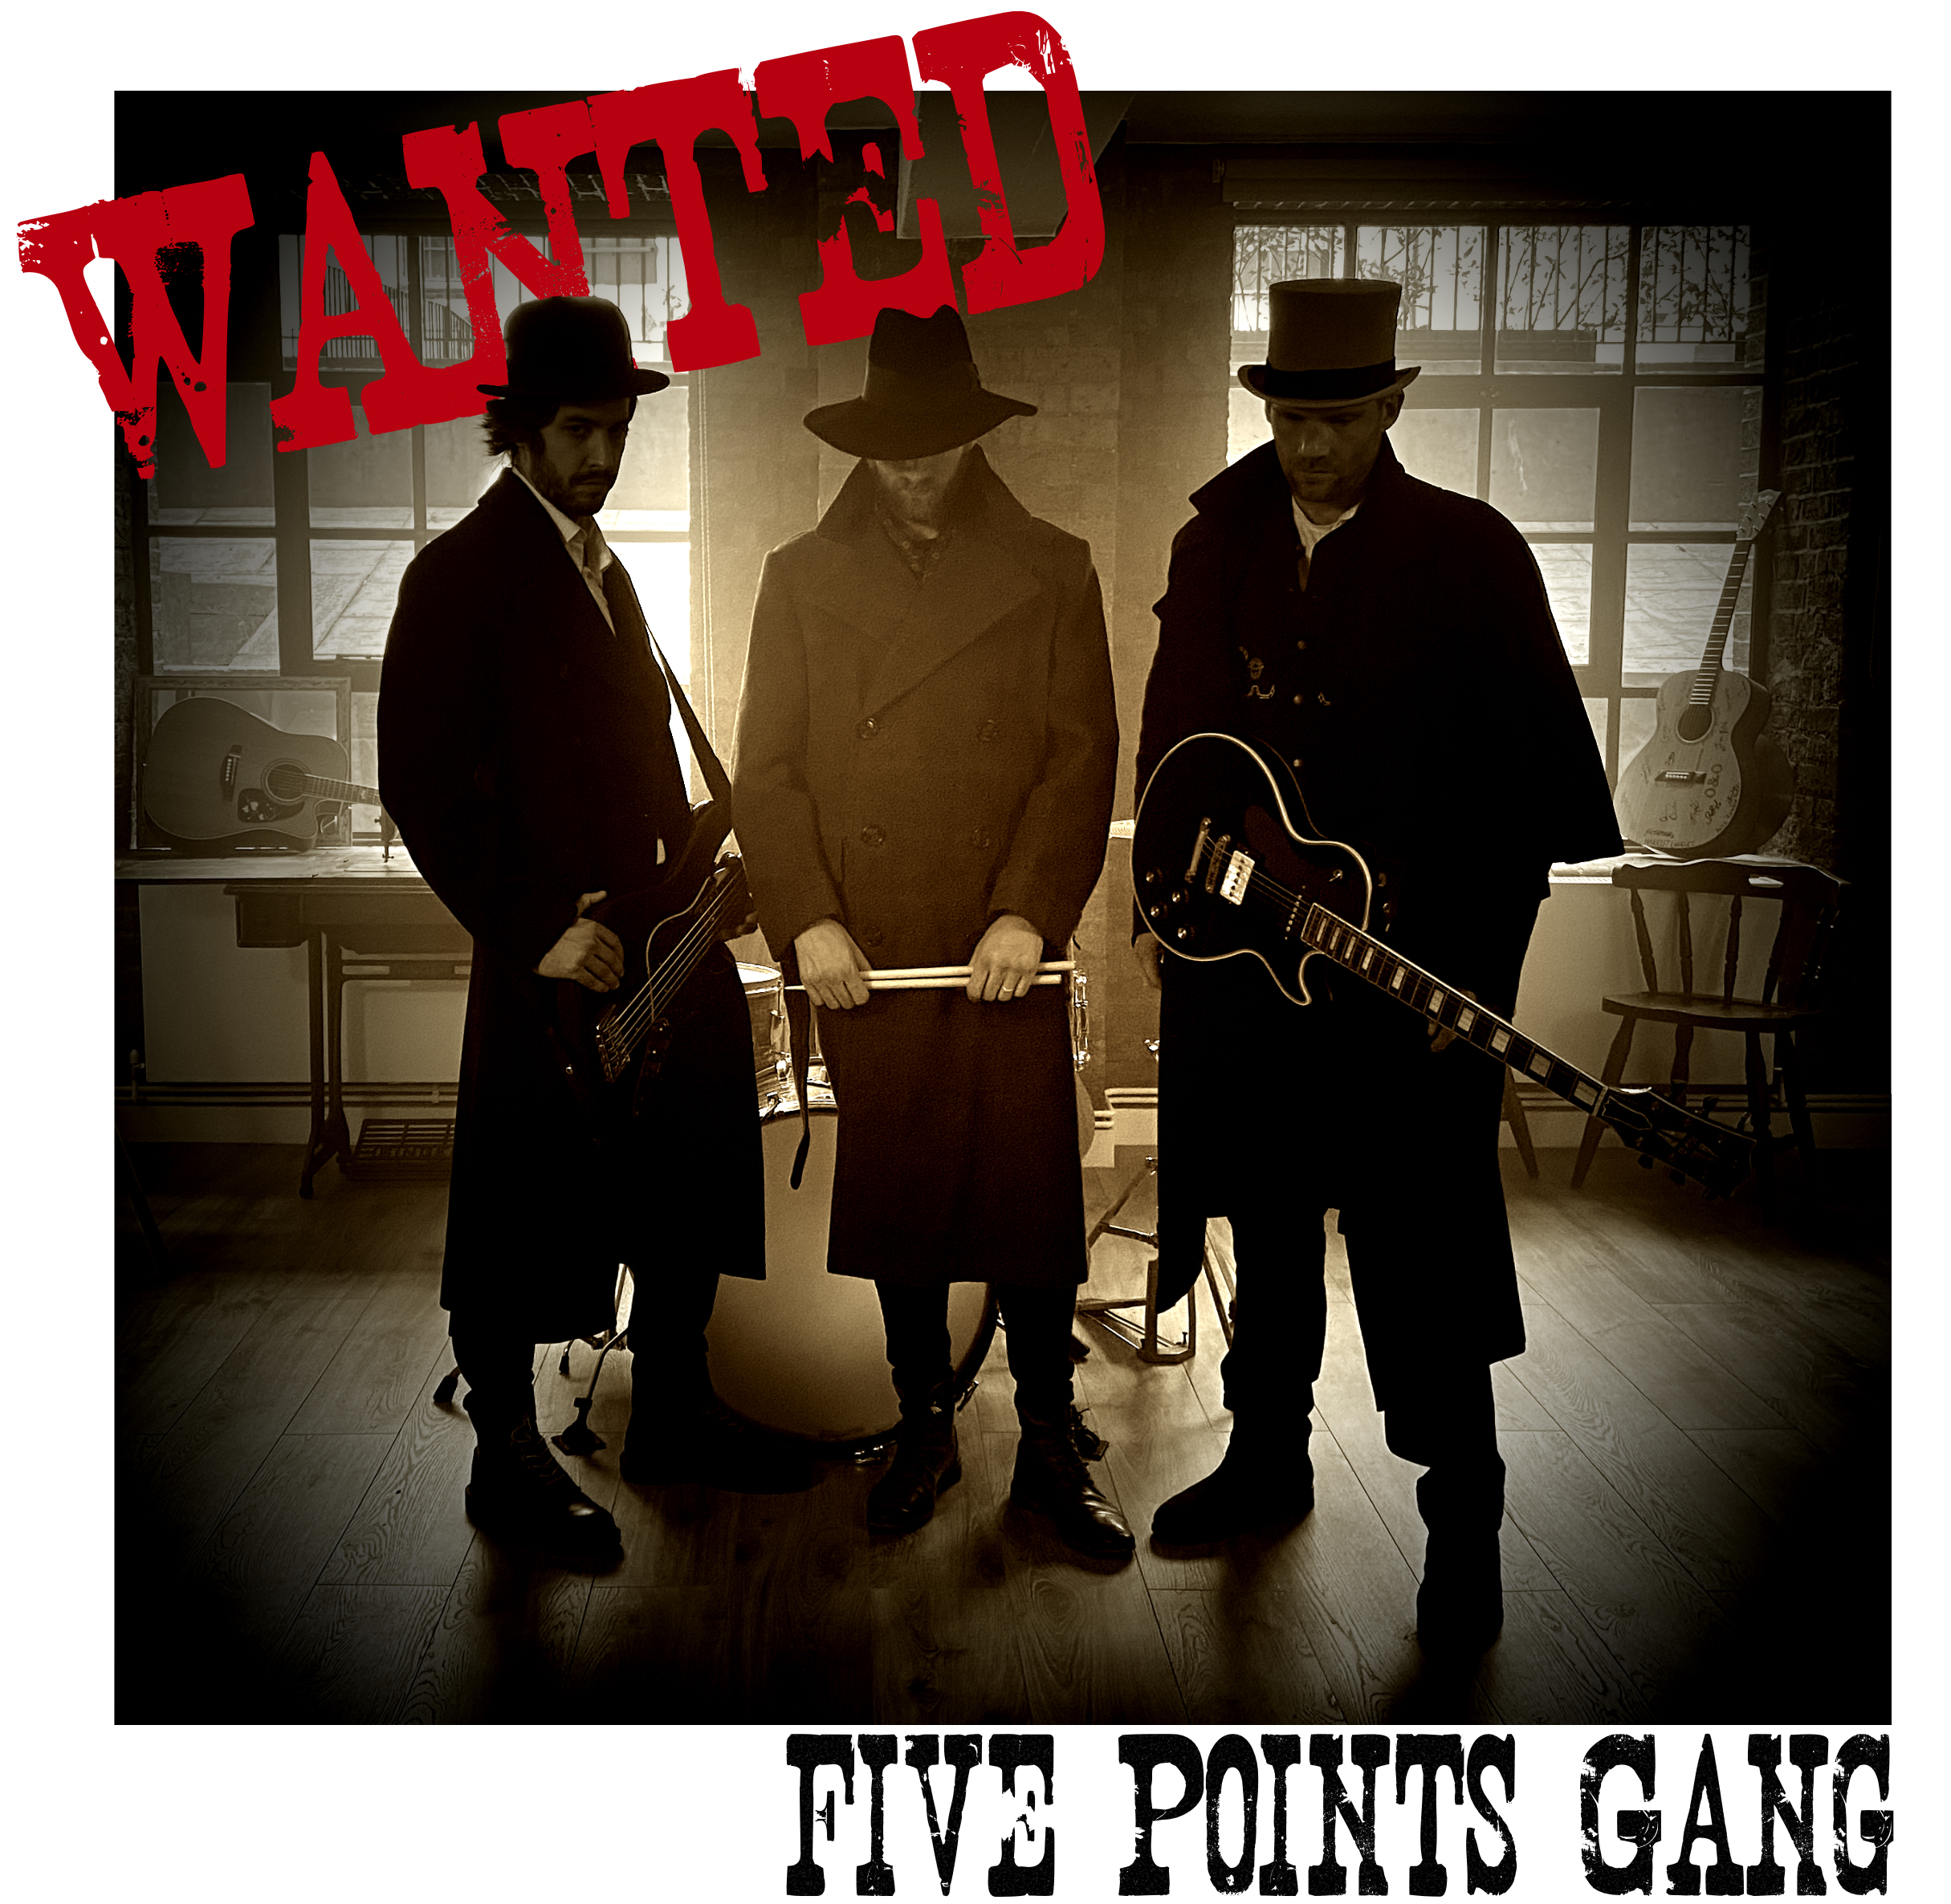 Five Points Gang have an APB on Wanted